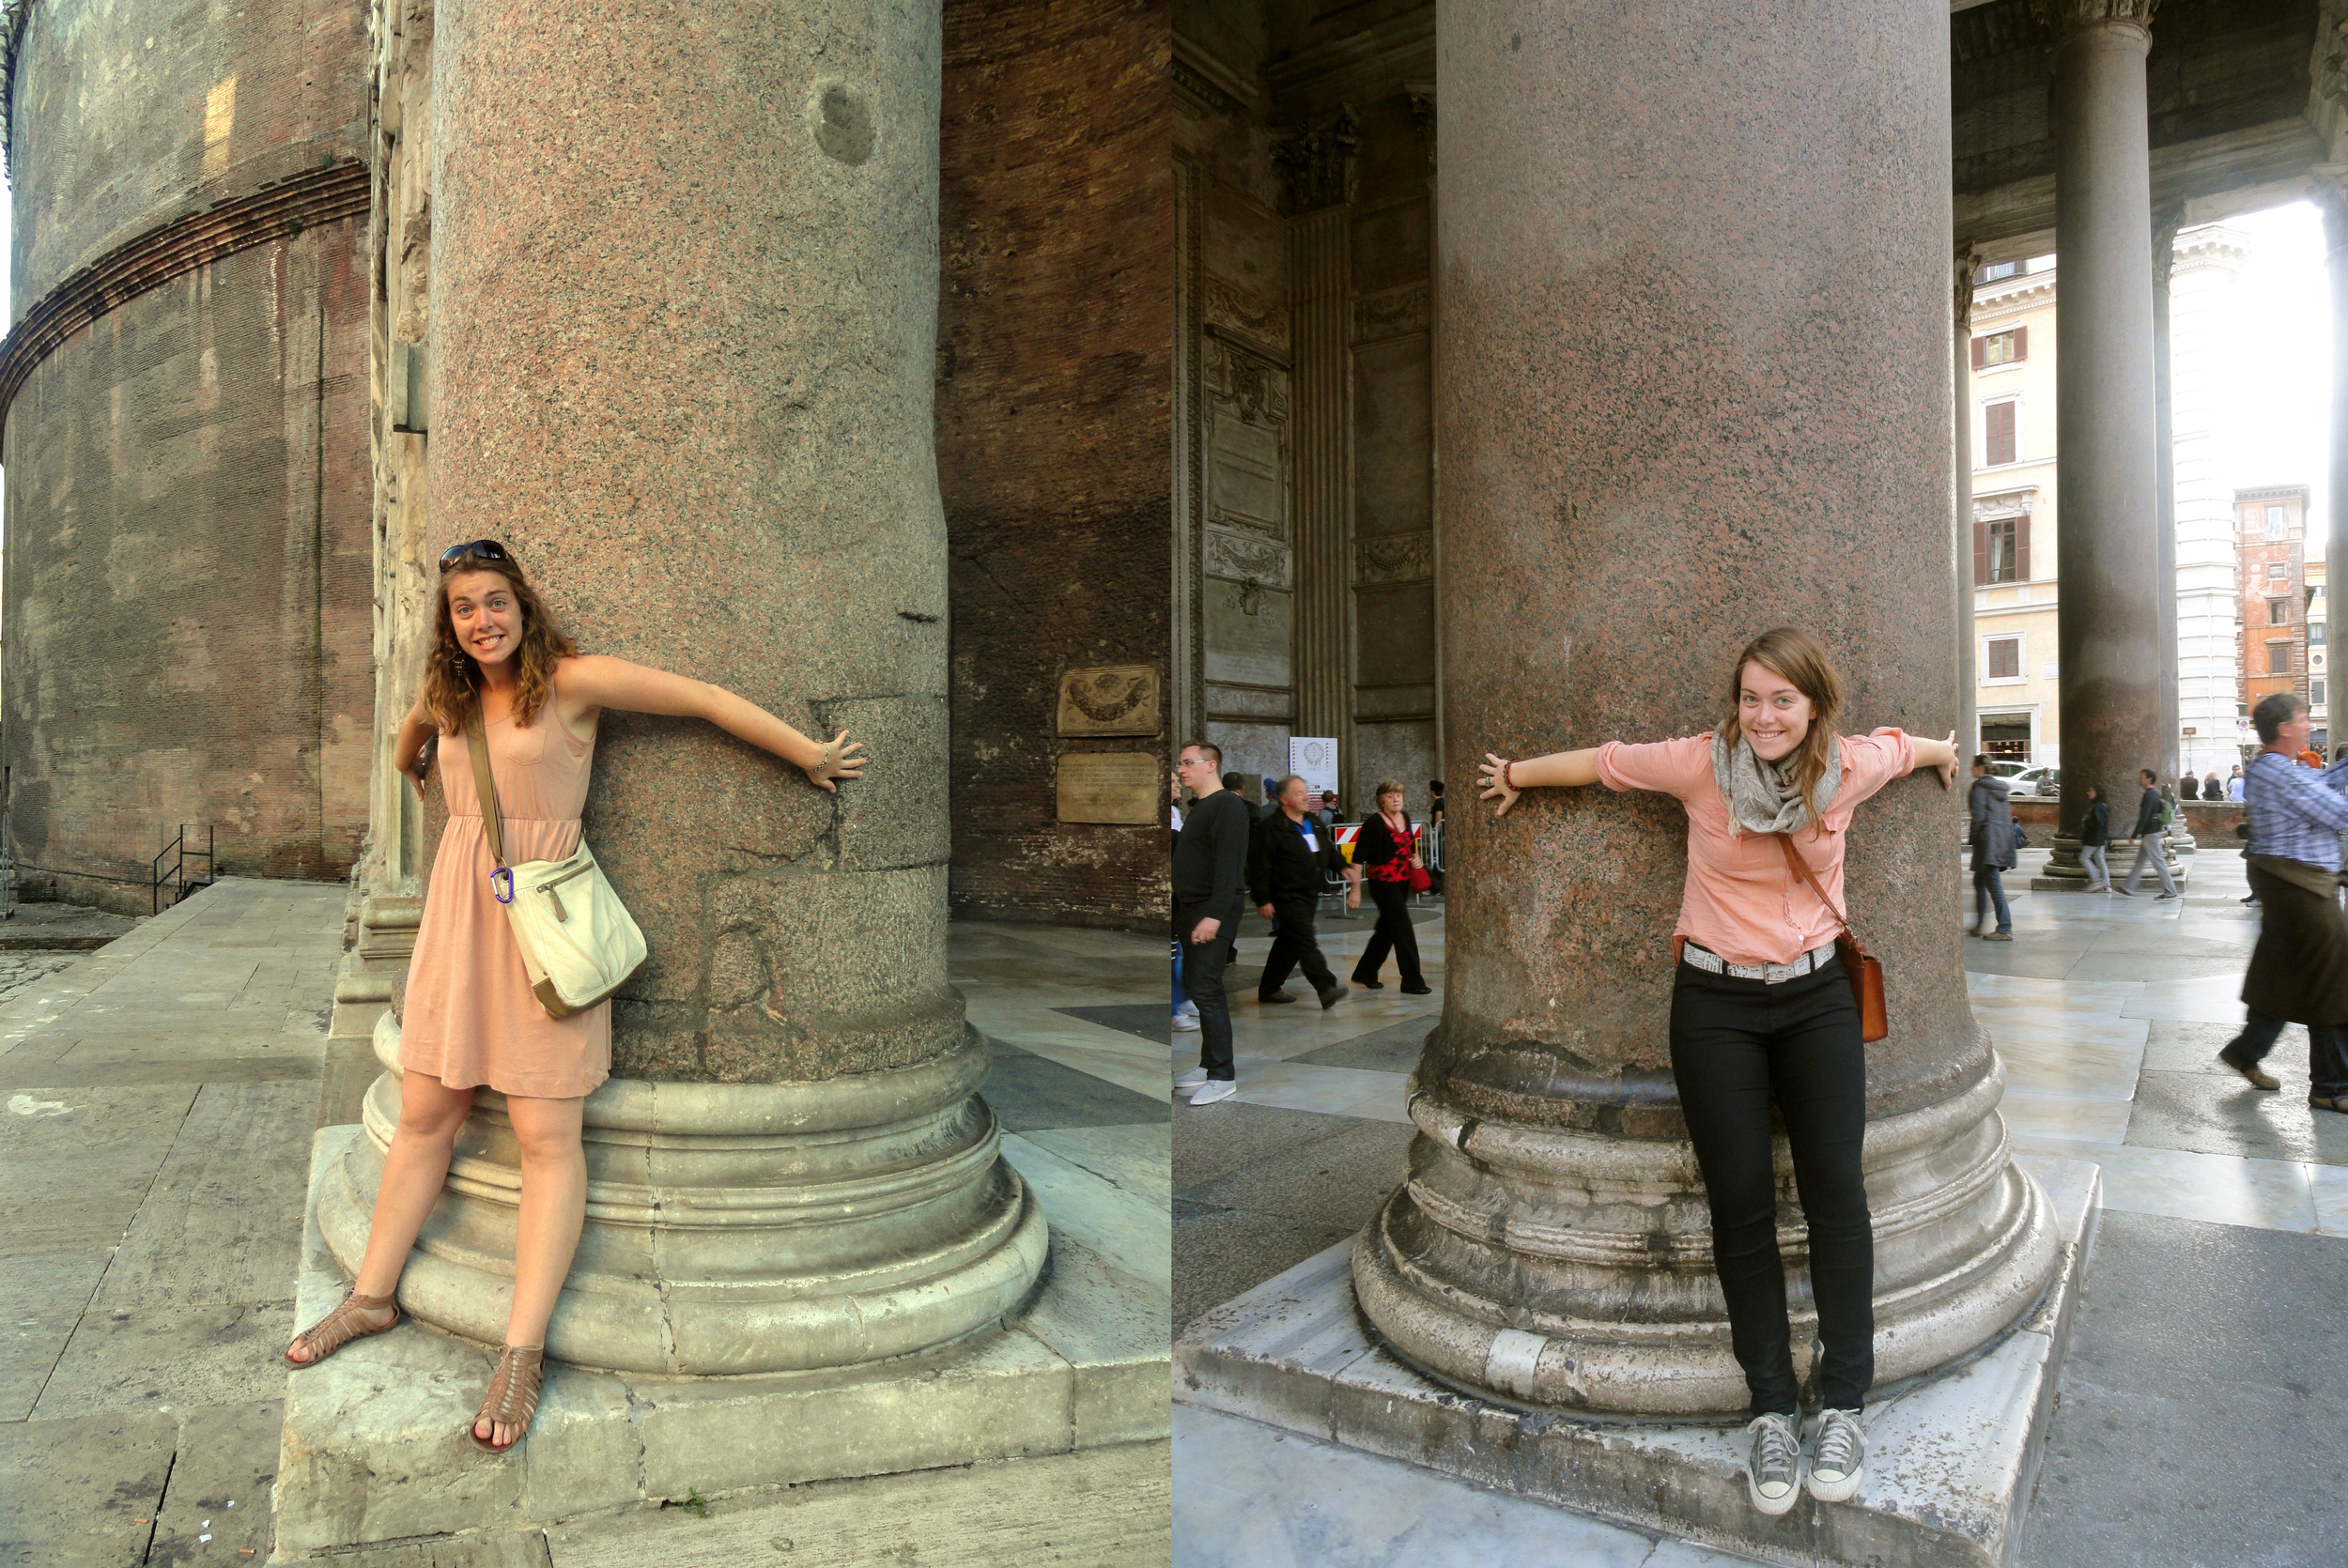 Rome 2011 and 2012